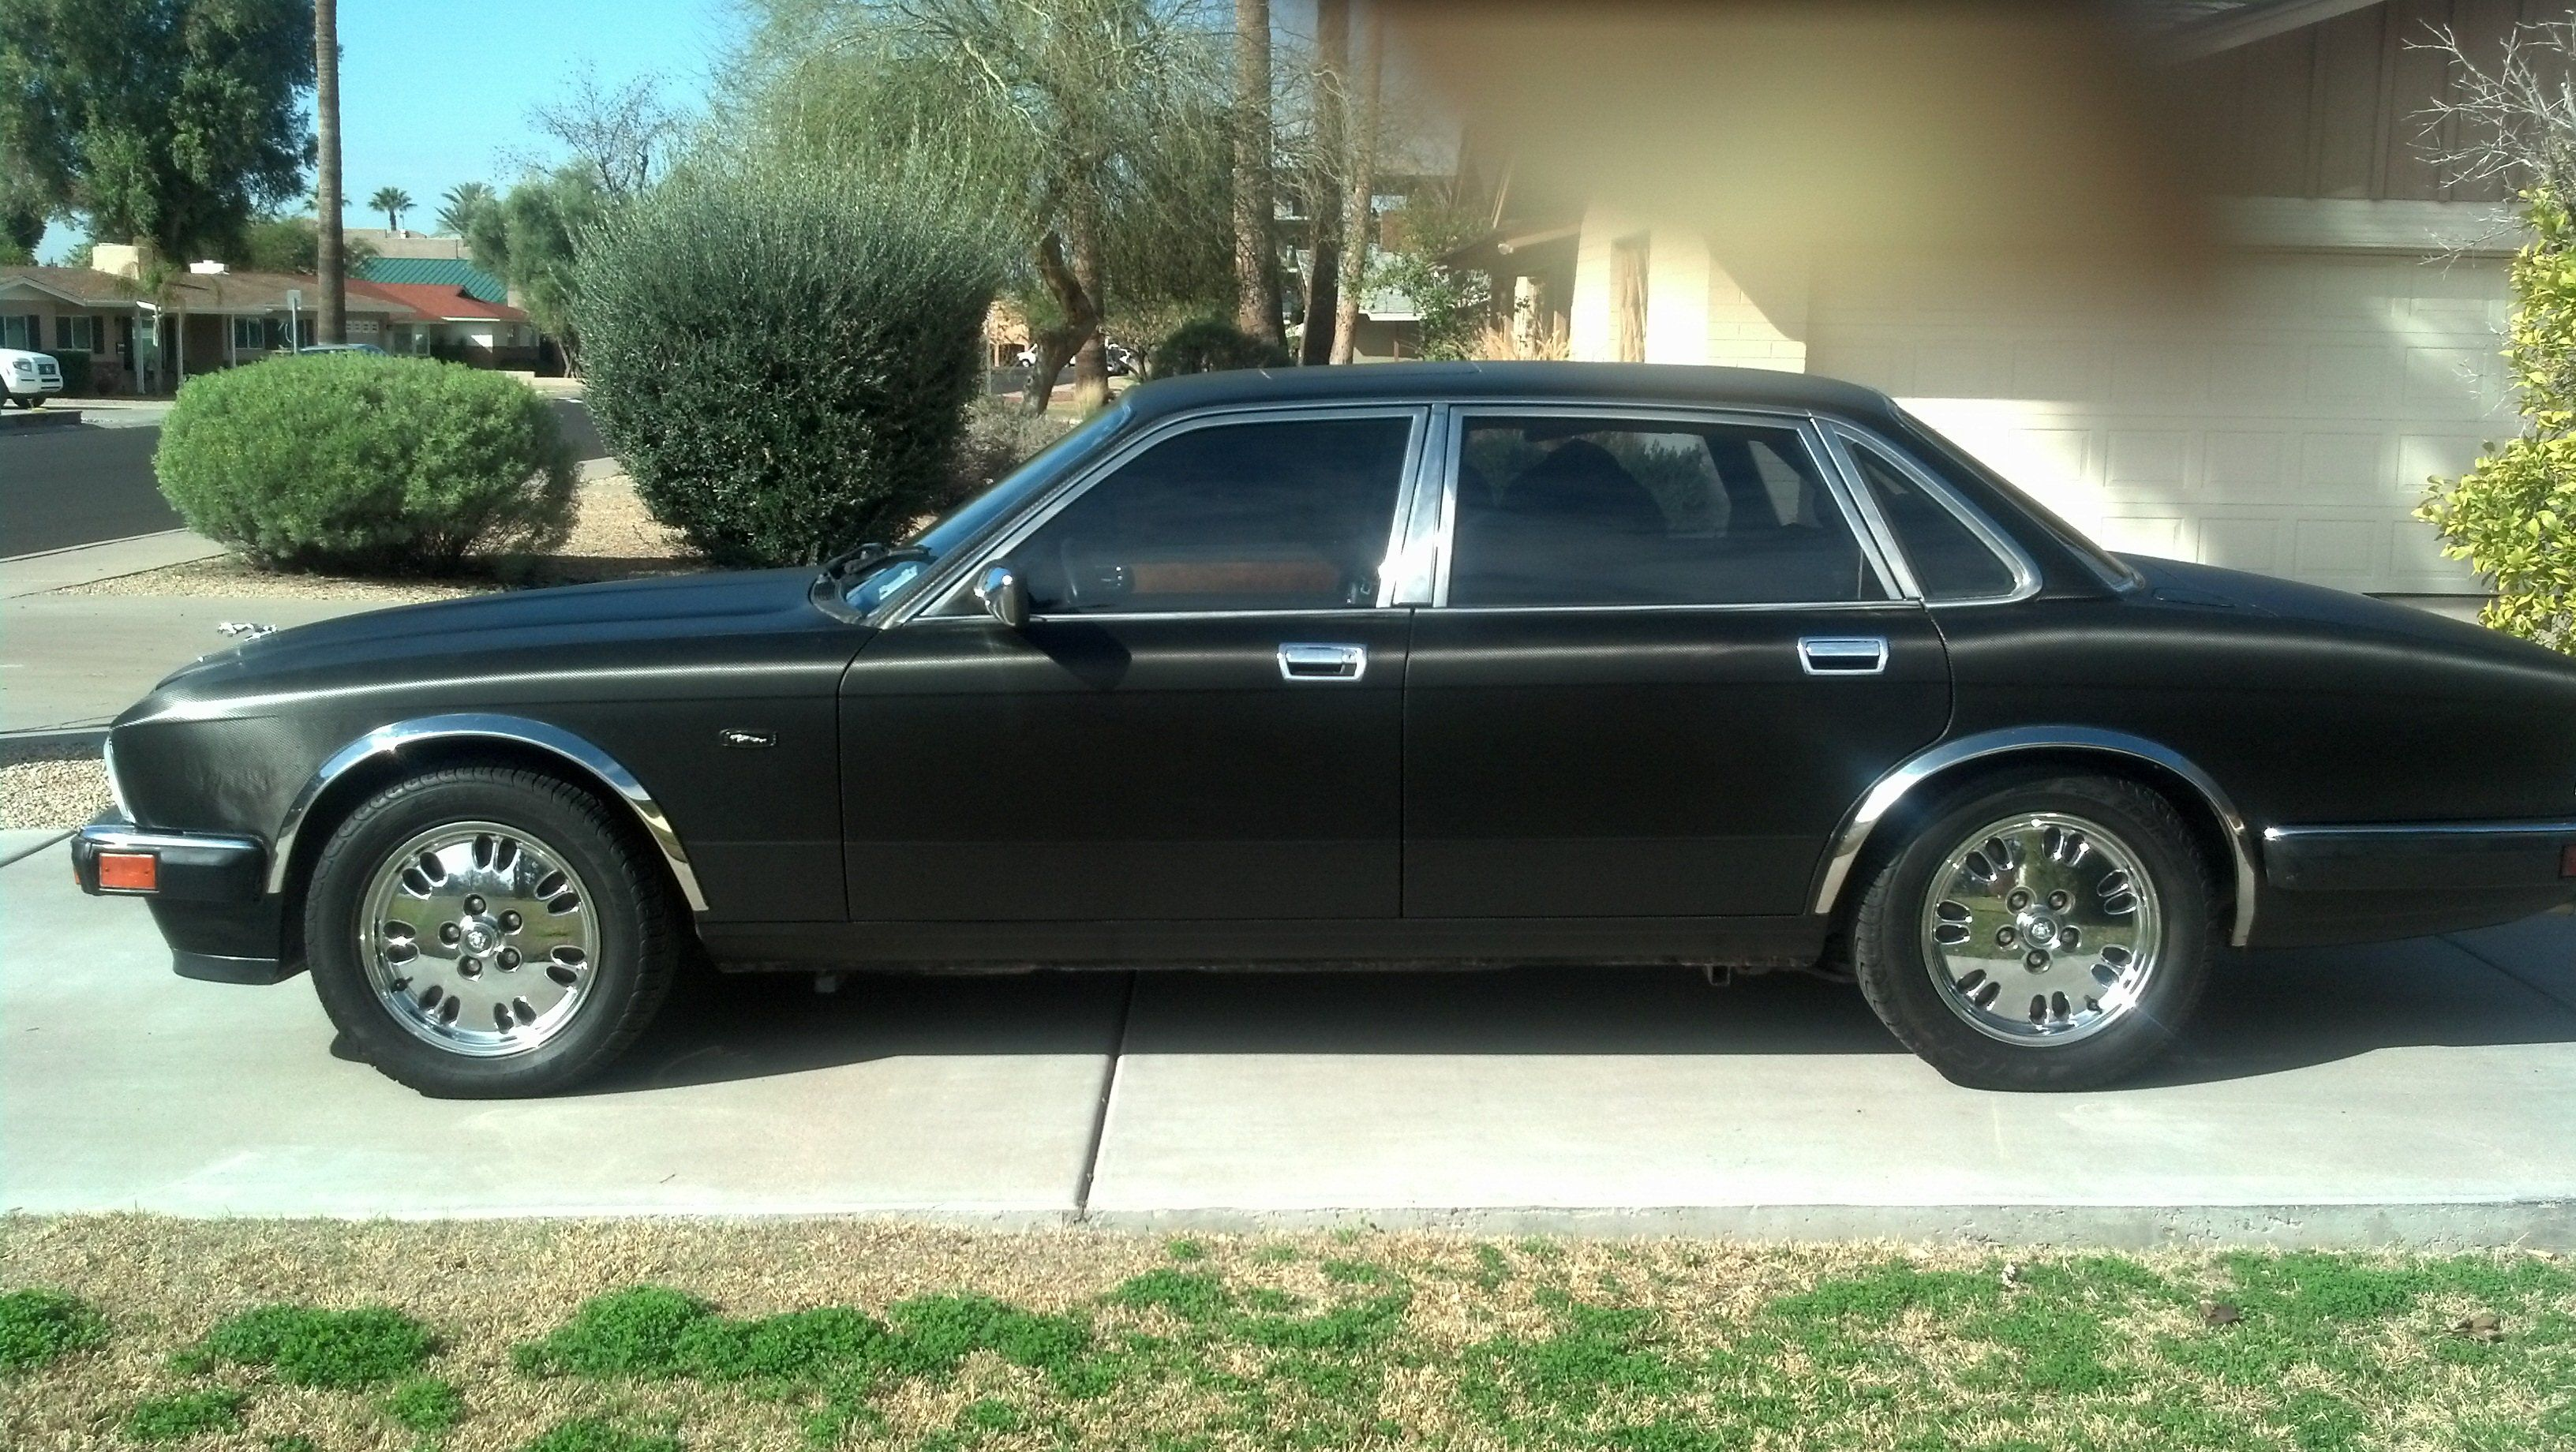 1994 jaguar xj6 carbon fiber black